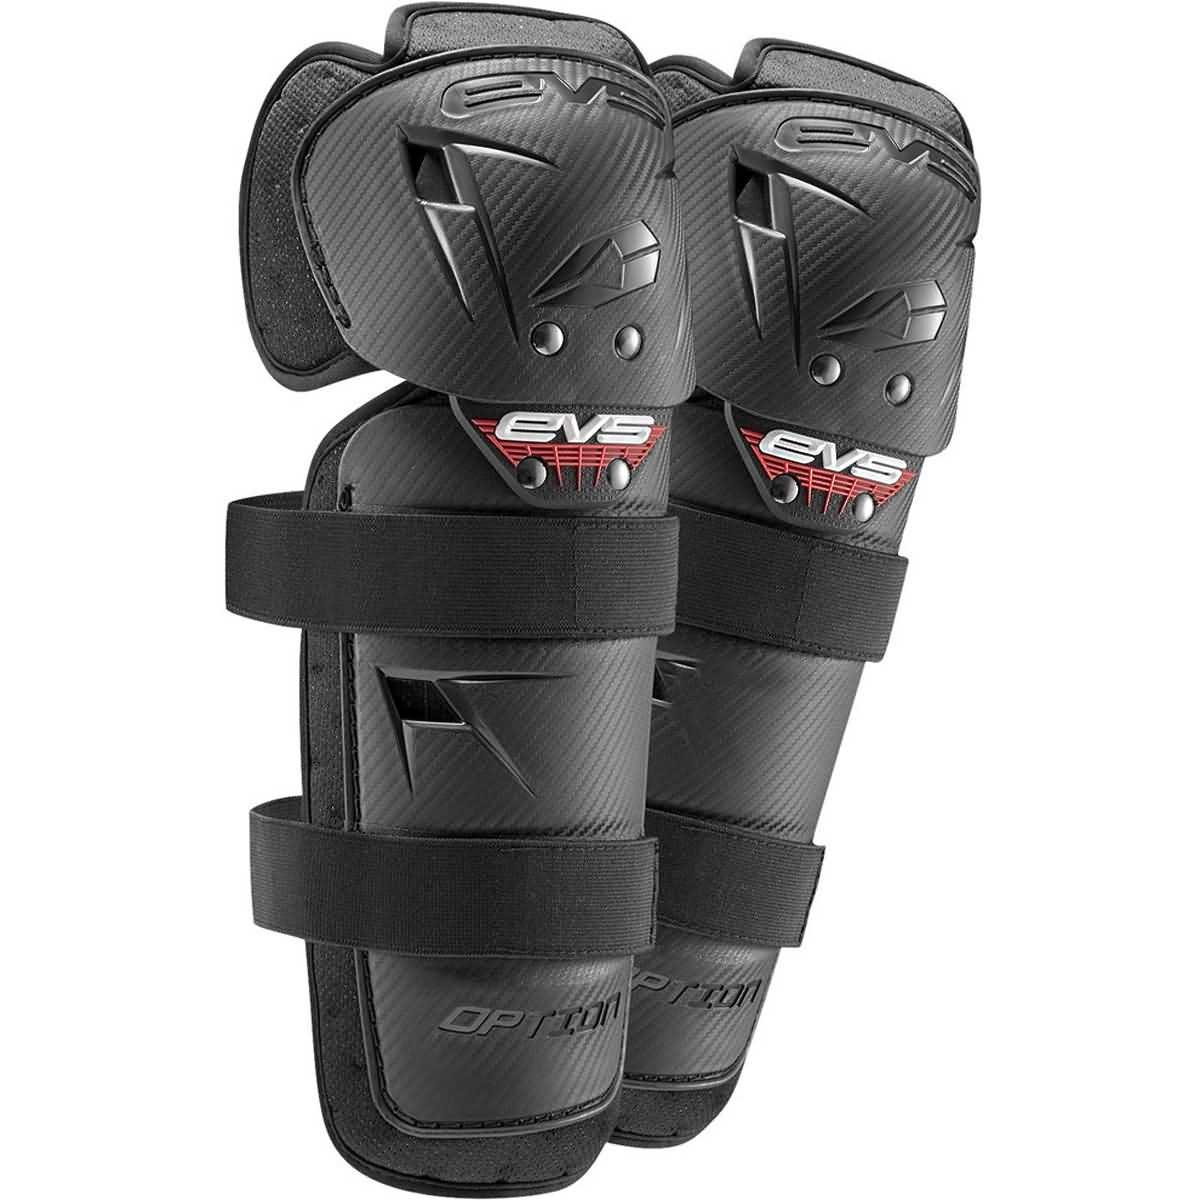 EVS 2016 Option Mini Knee Guard Off-Road Motorcycle Body Armor - Black/One Size by EVS Sports (Image #1)